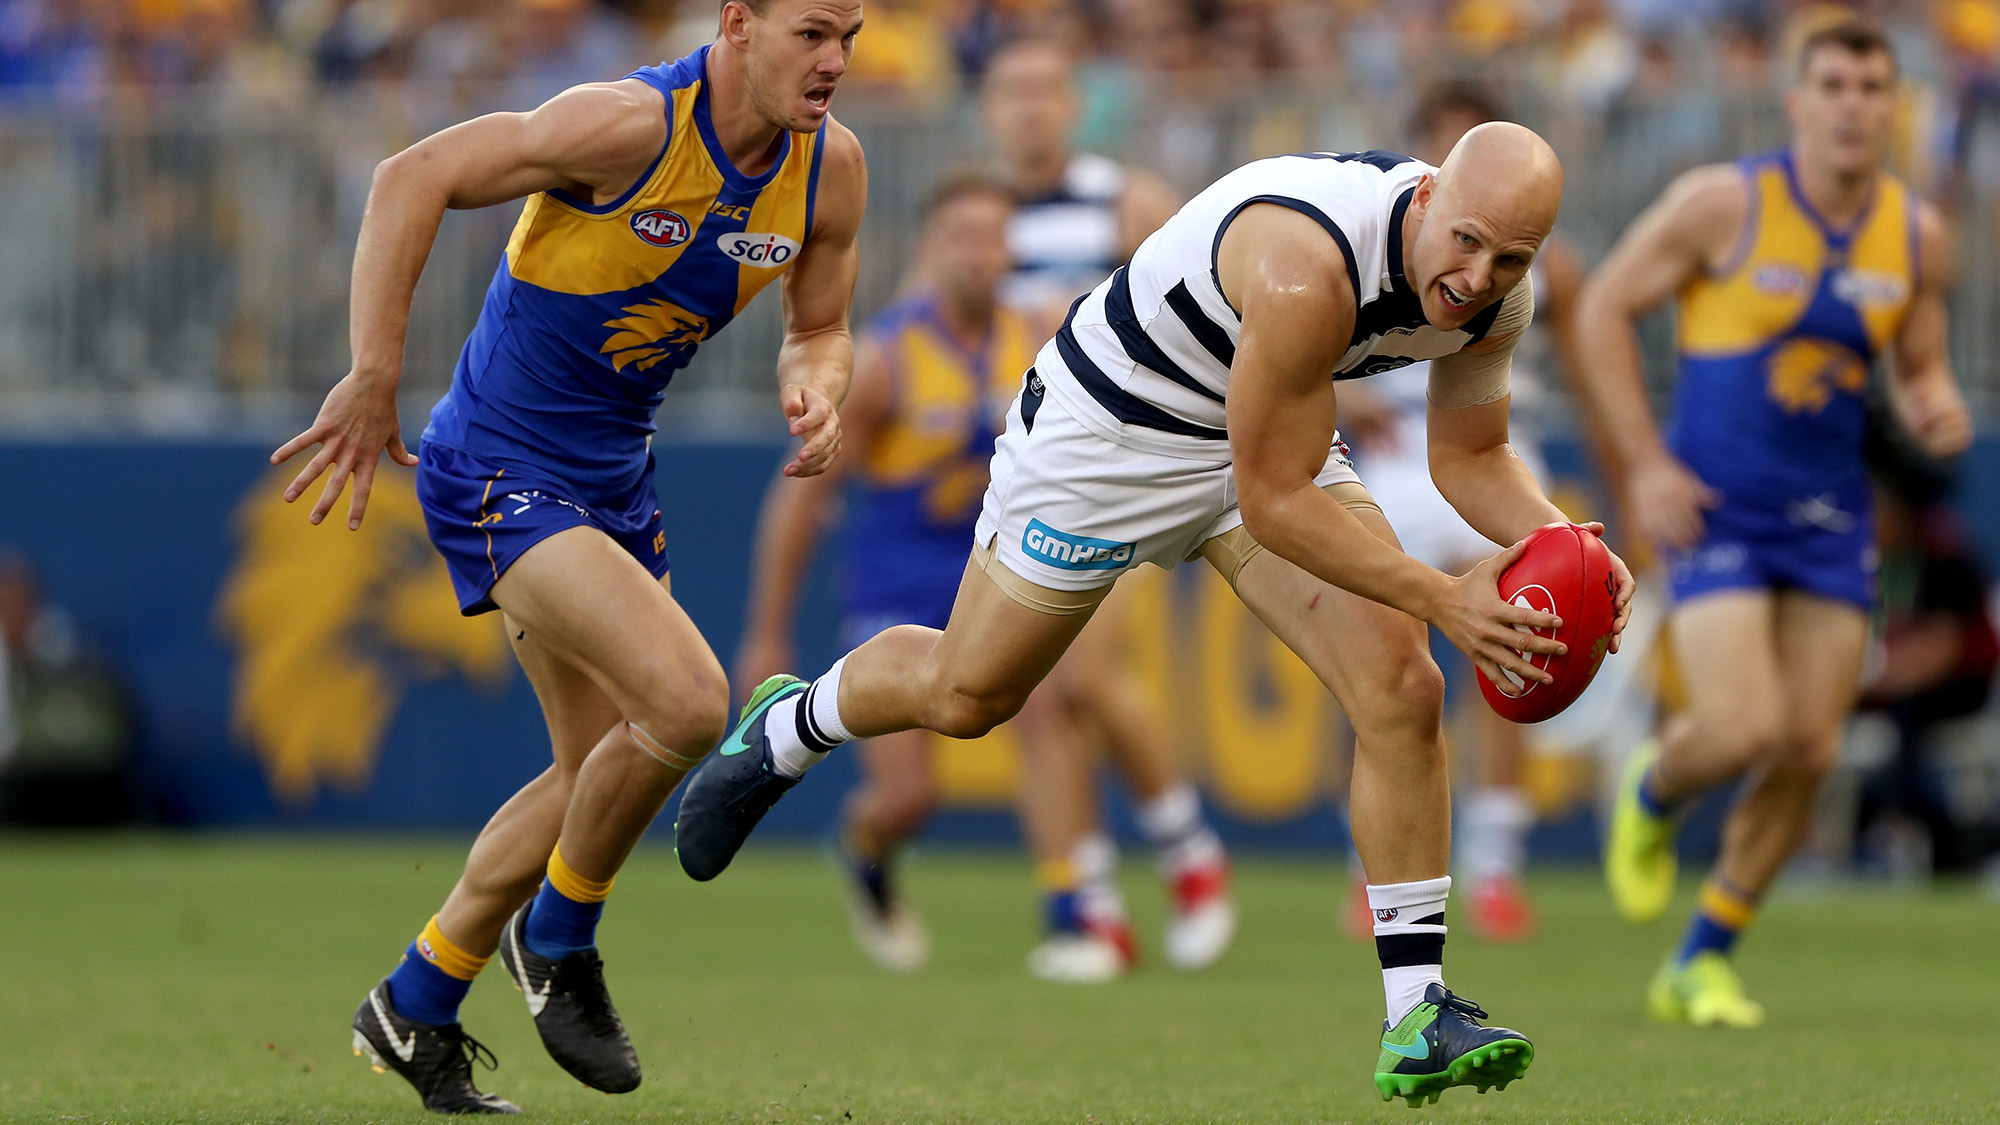 Wild fight at Port Adelaide-Geelong match at Adelaide Oval